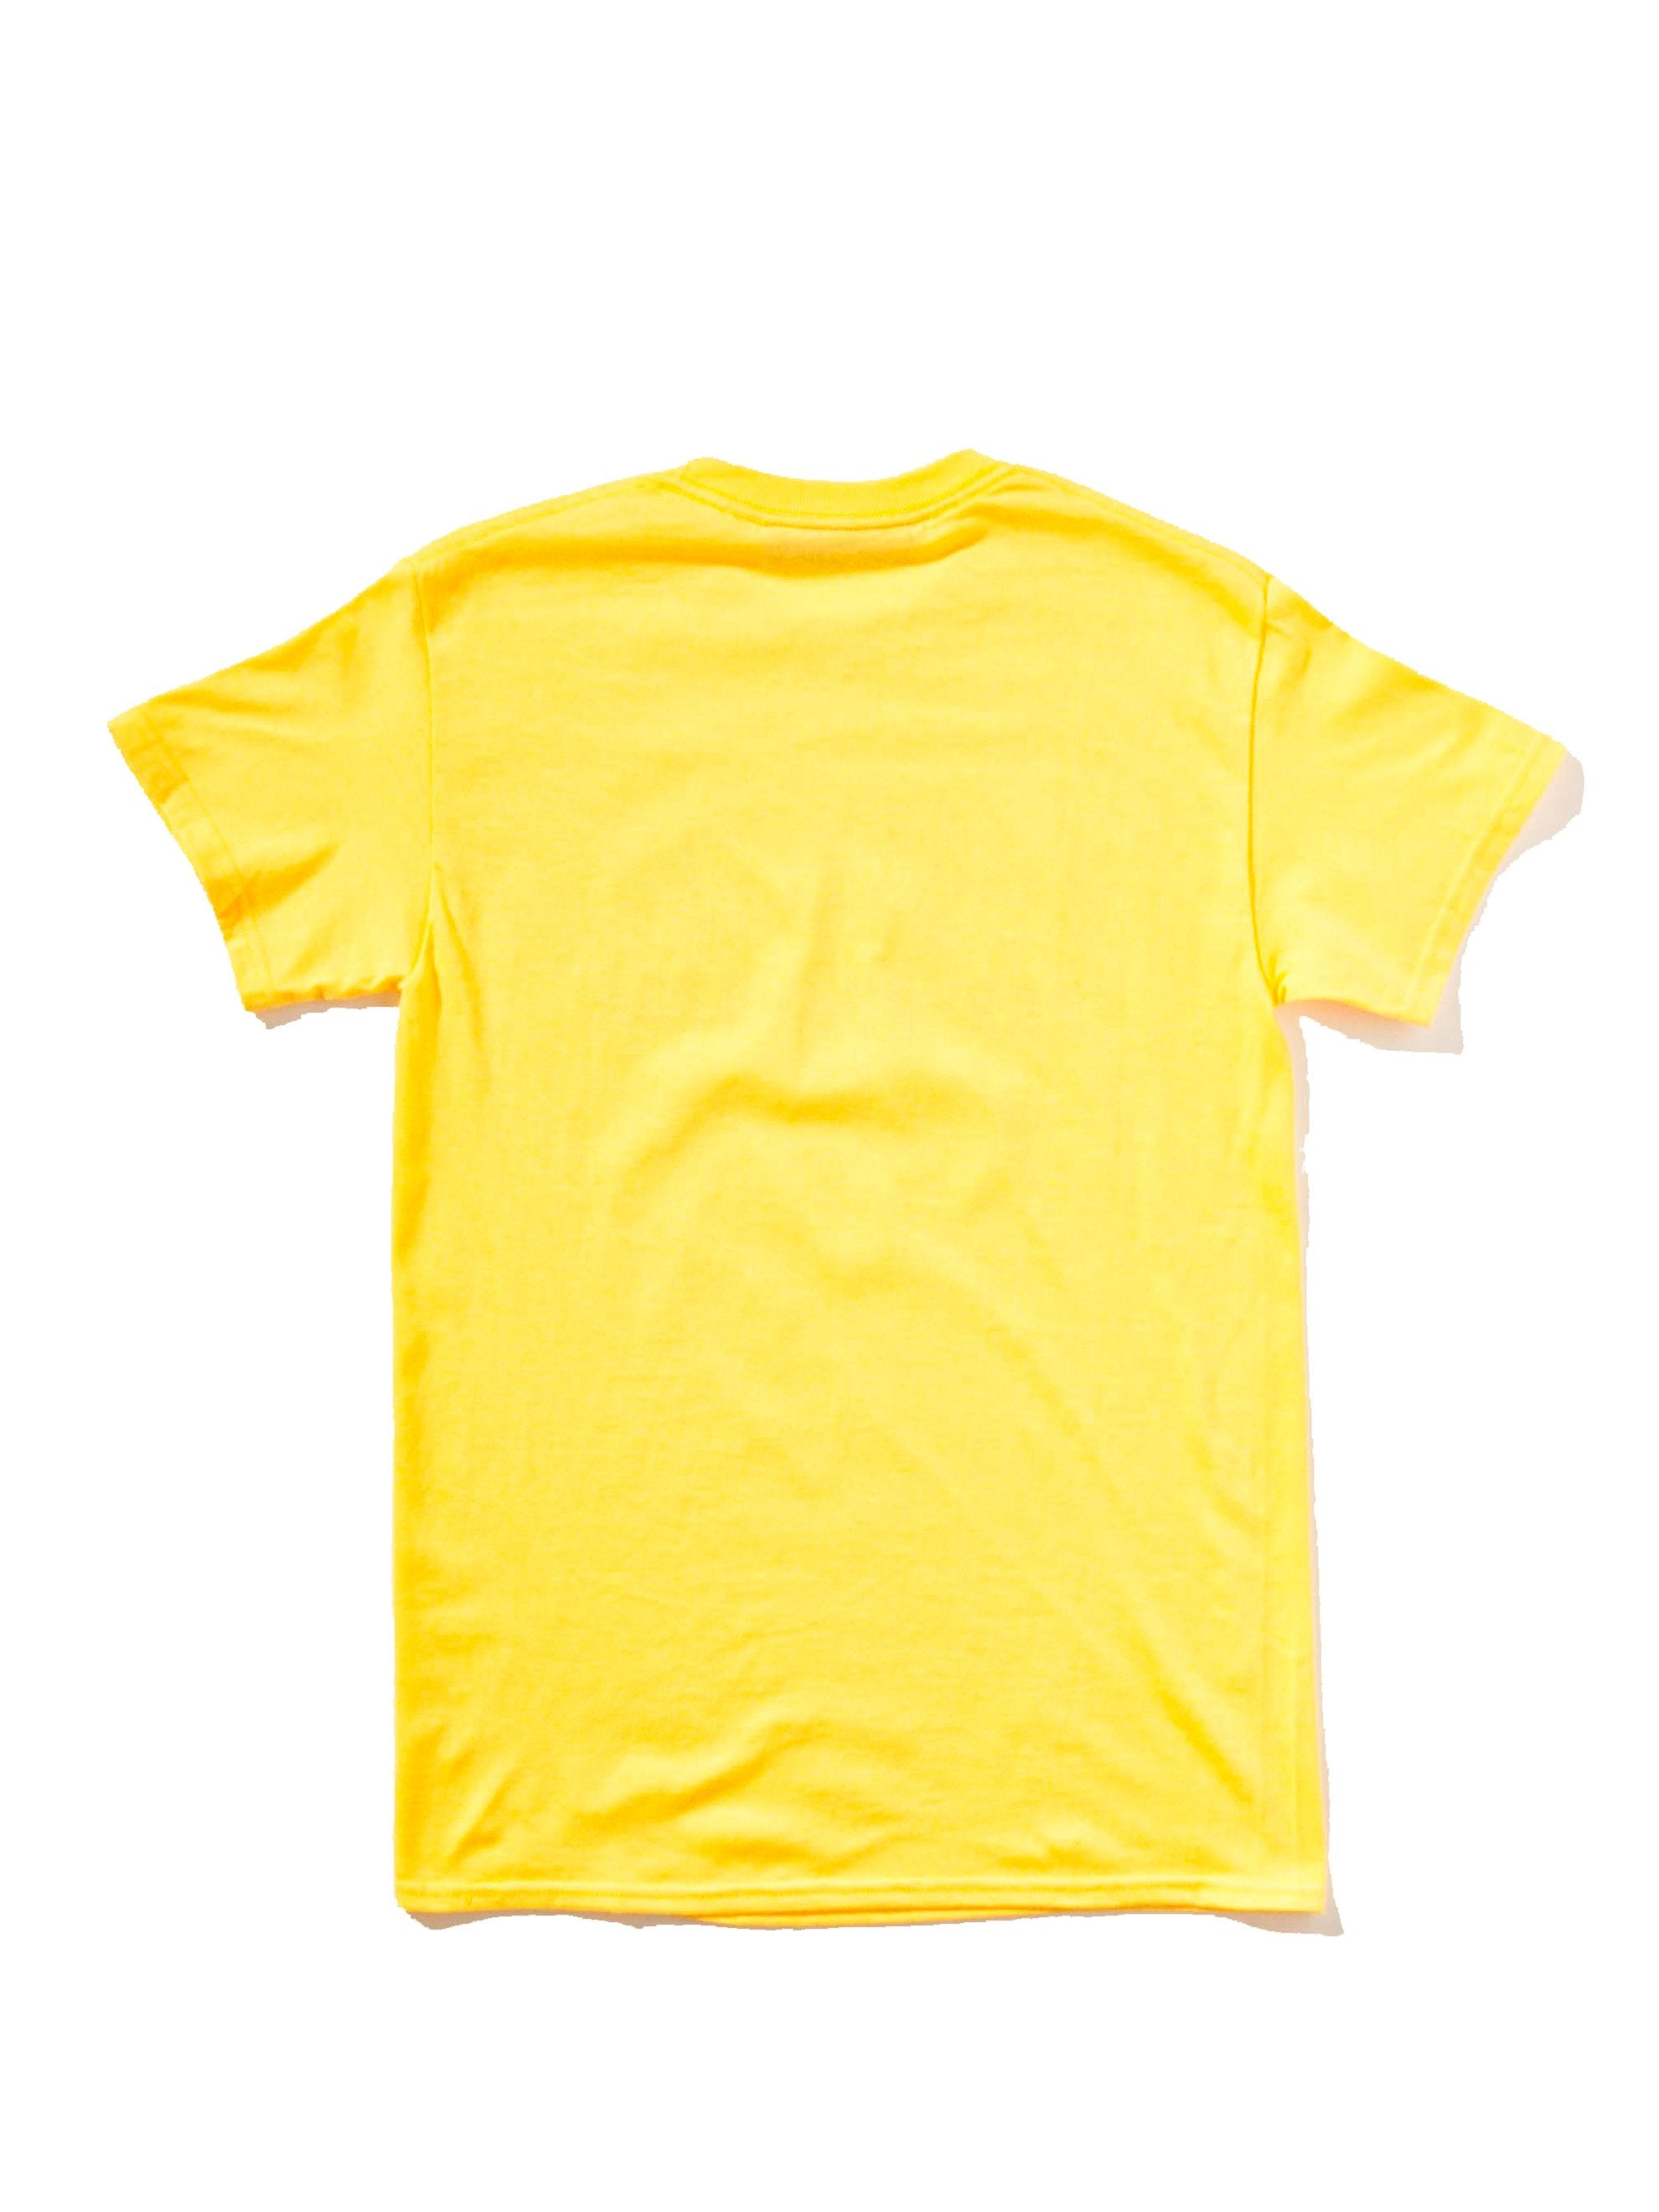 Blue Groovy Call Me T-Shirt 8